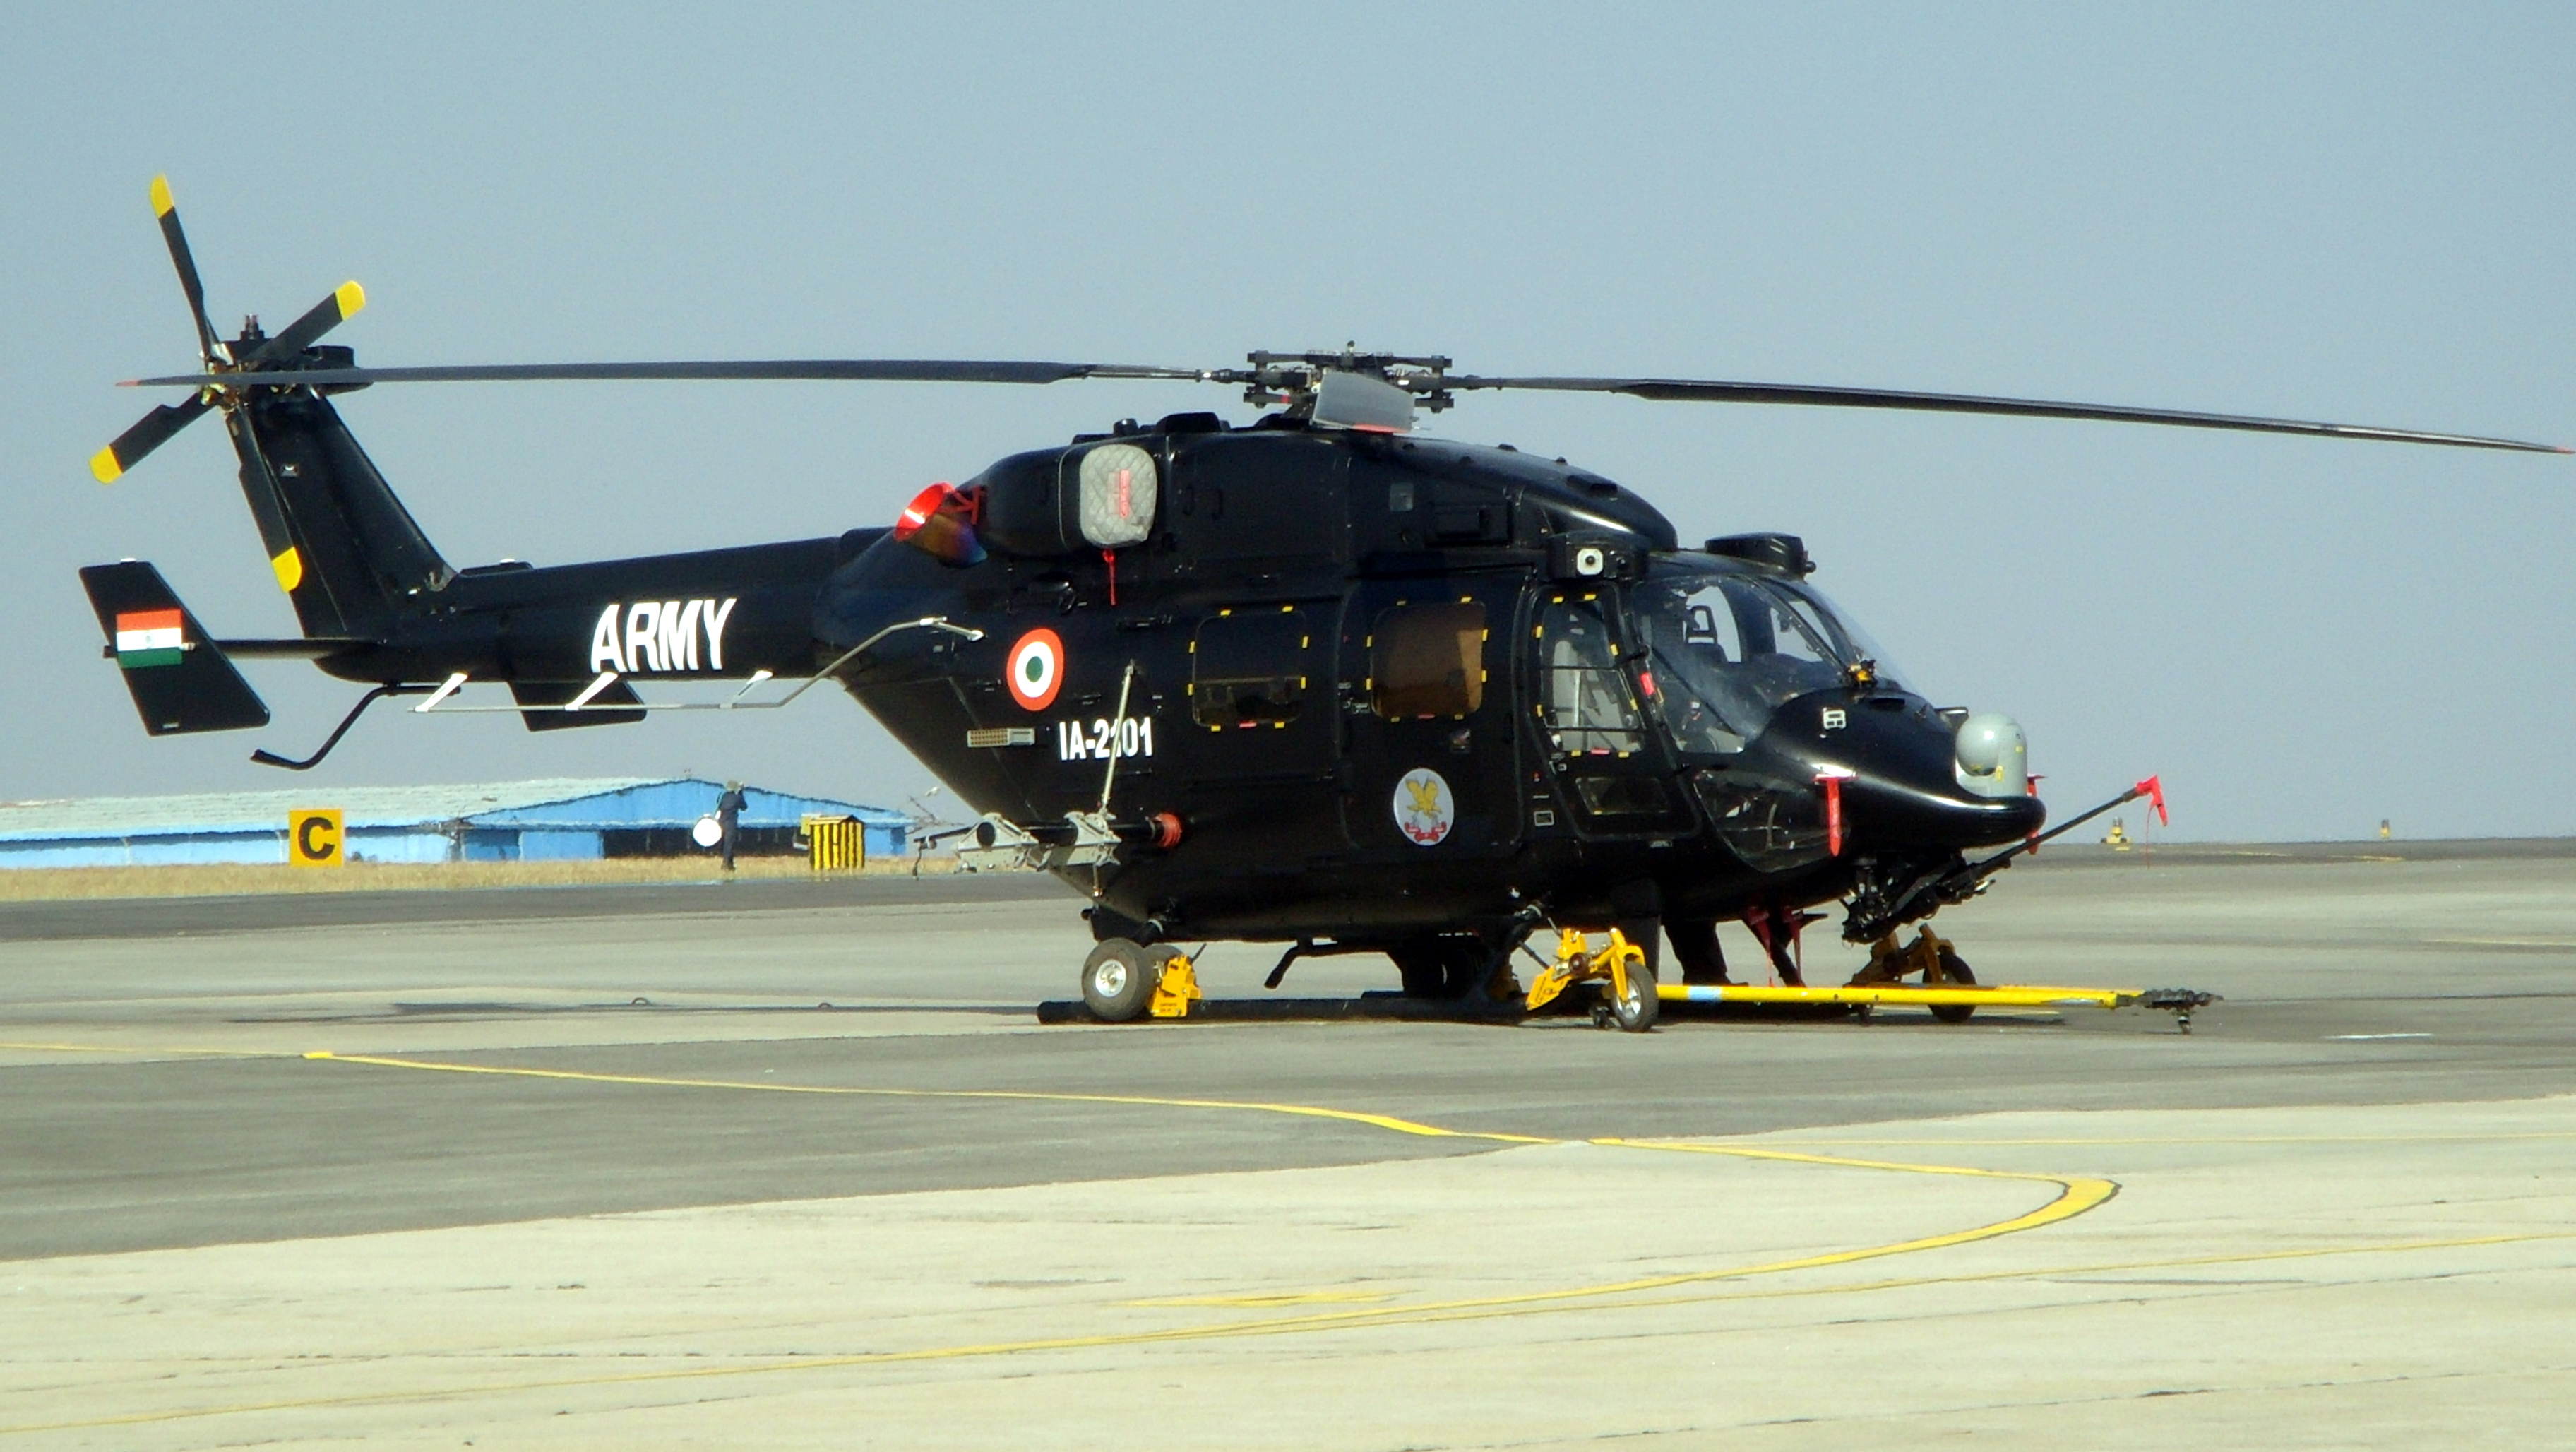 Possible sale of ALH Dhruv to Afghanistan | Indian Defence ...